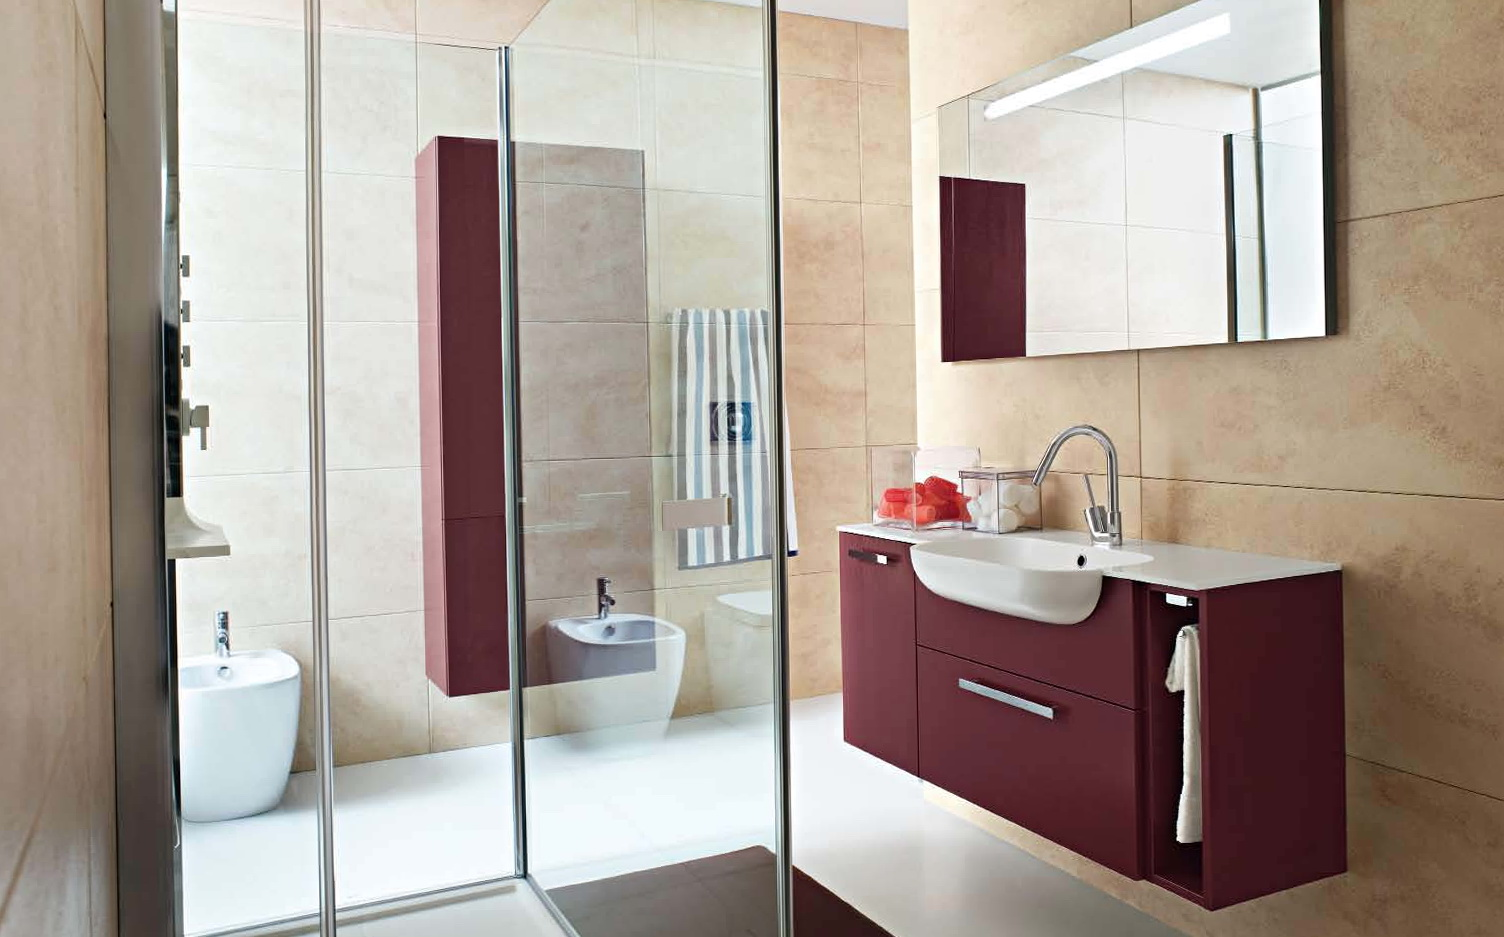 ikea bathroom cabinets with wall mirror | Ikea Bathroom Mirror Cabinet | Home Design Ideas